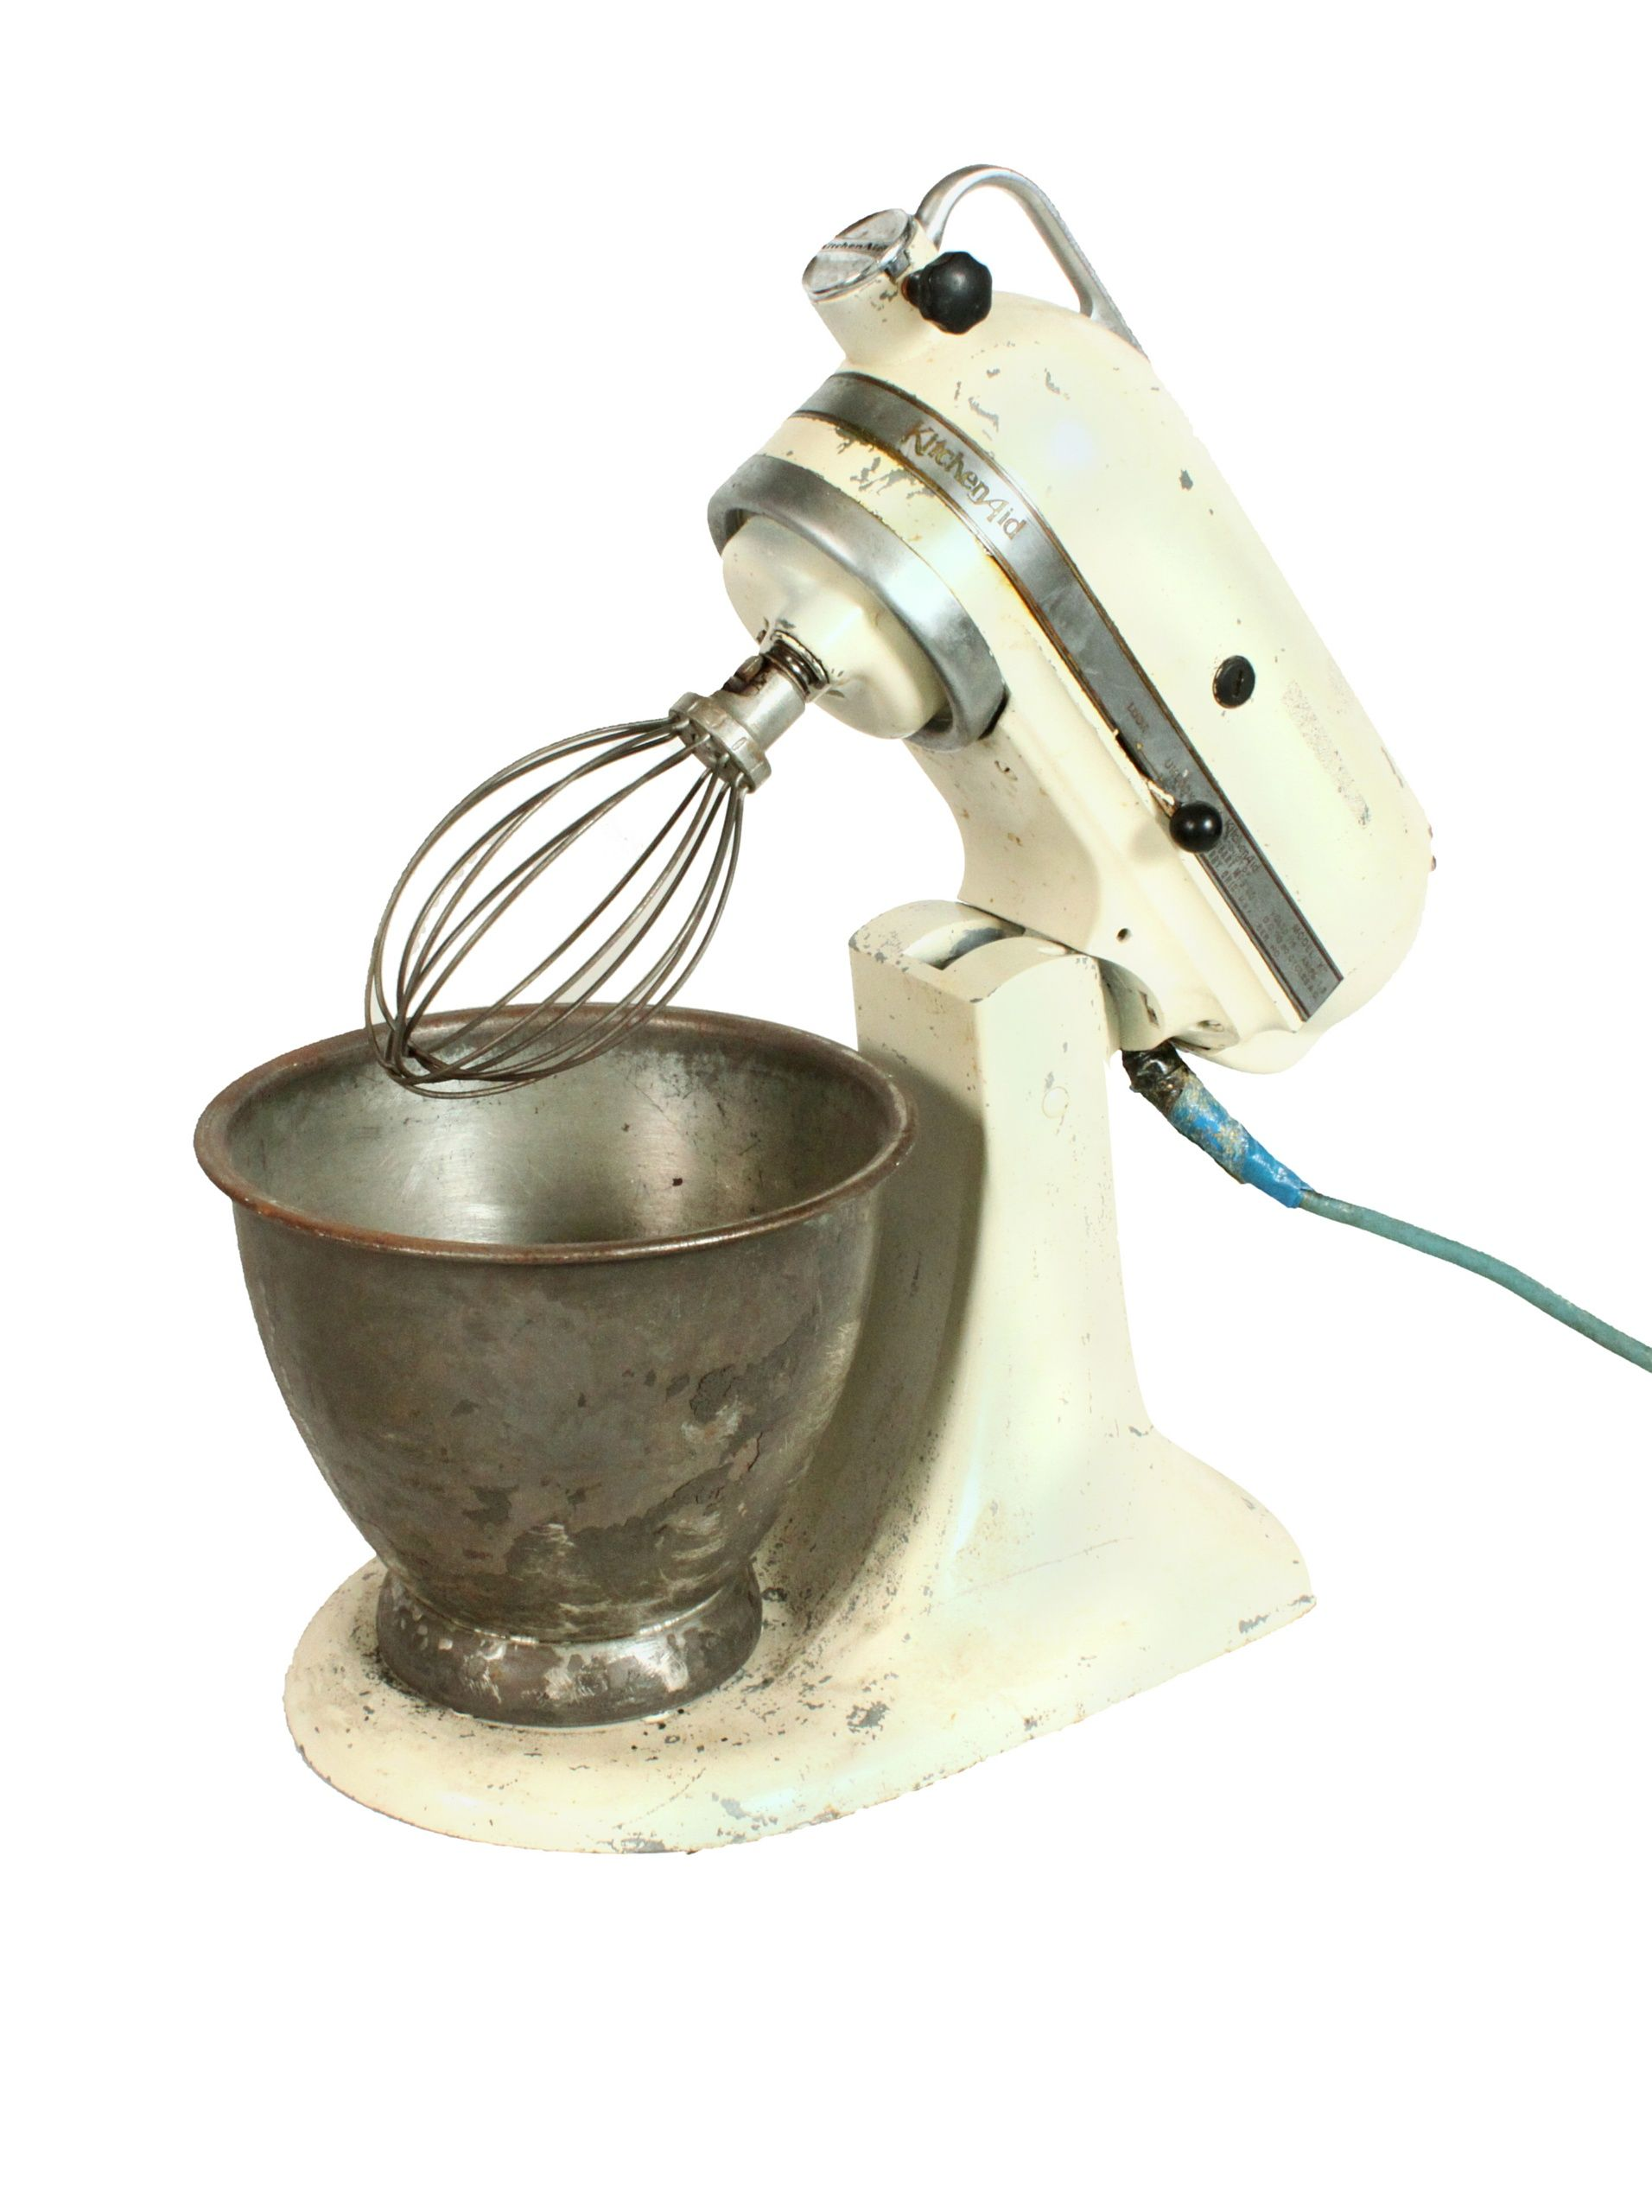 Kitchenaid Mixer, Cream Add Vintage Charm To Your Kitchen With This Iconic  Design; For Decorative Use Only Mixer